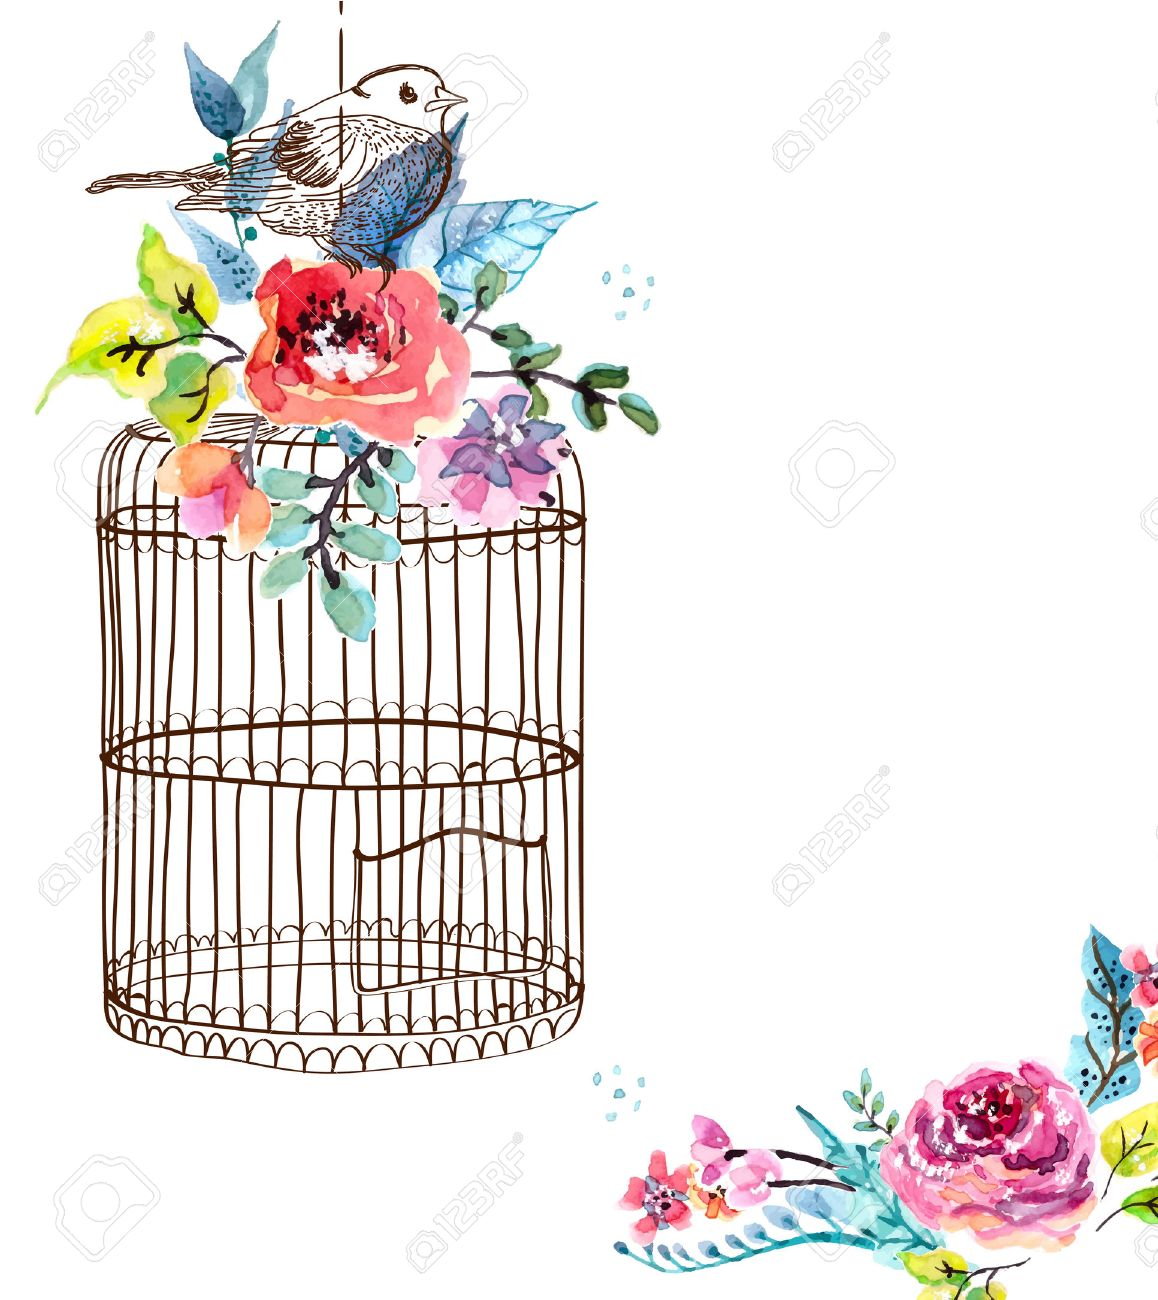 watercolor flowers and bird cage for happy birthday design or